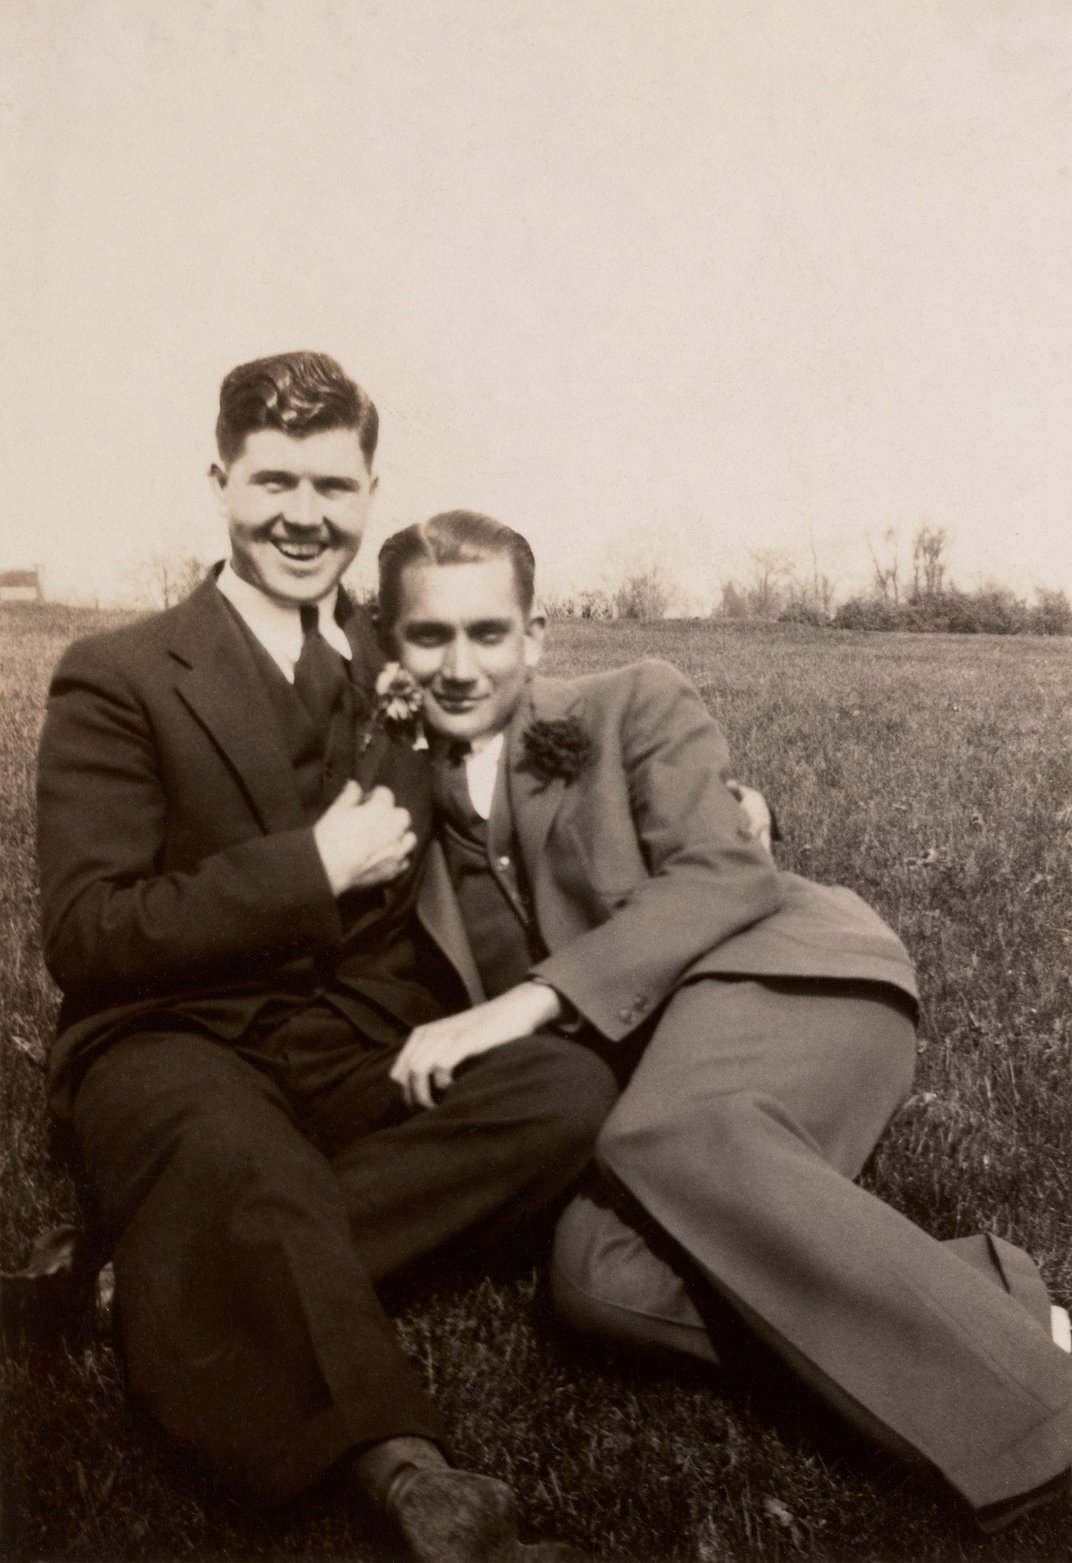 Newly Published Portraits Document a Century of Gay Men's Relationships